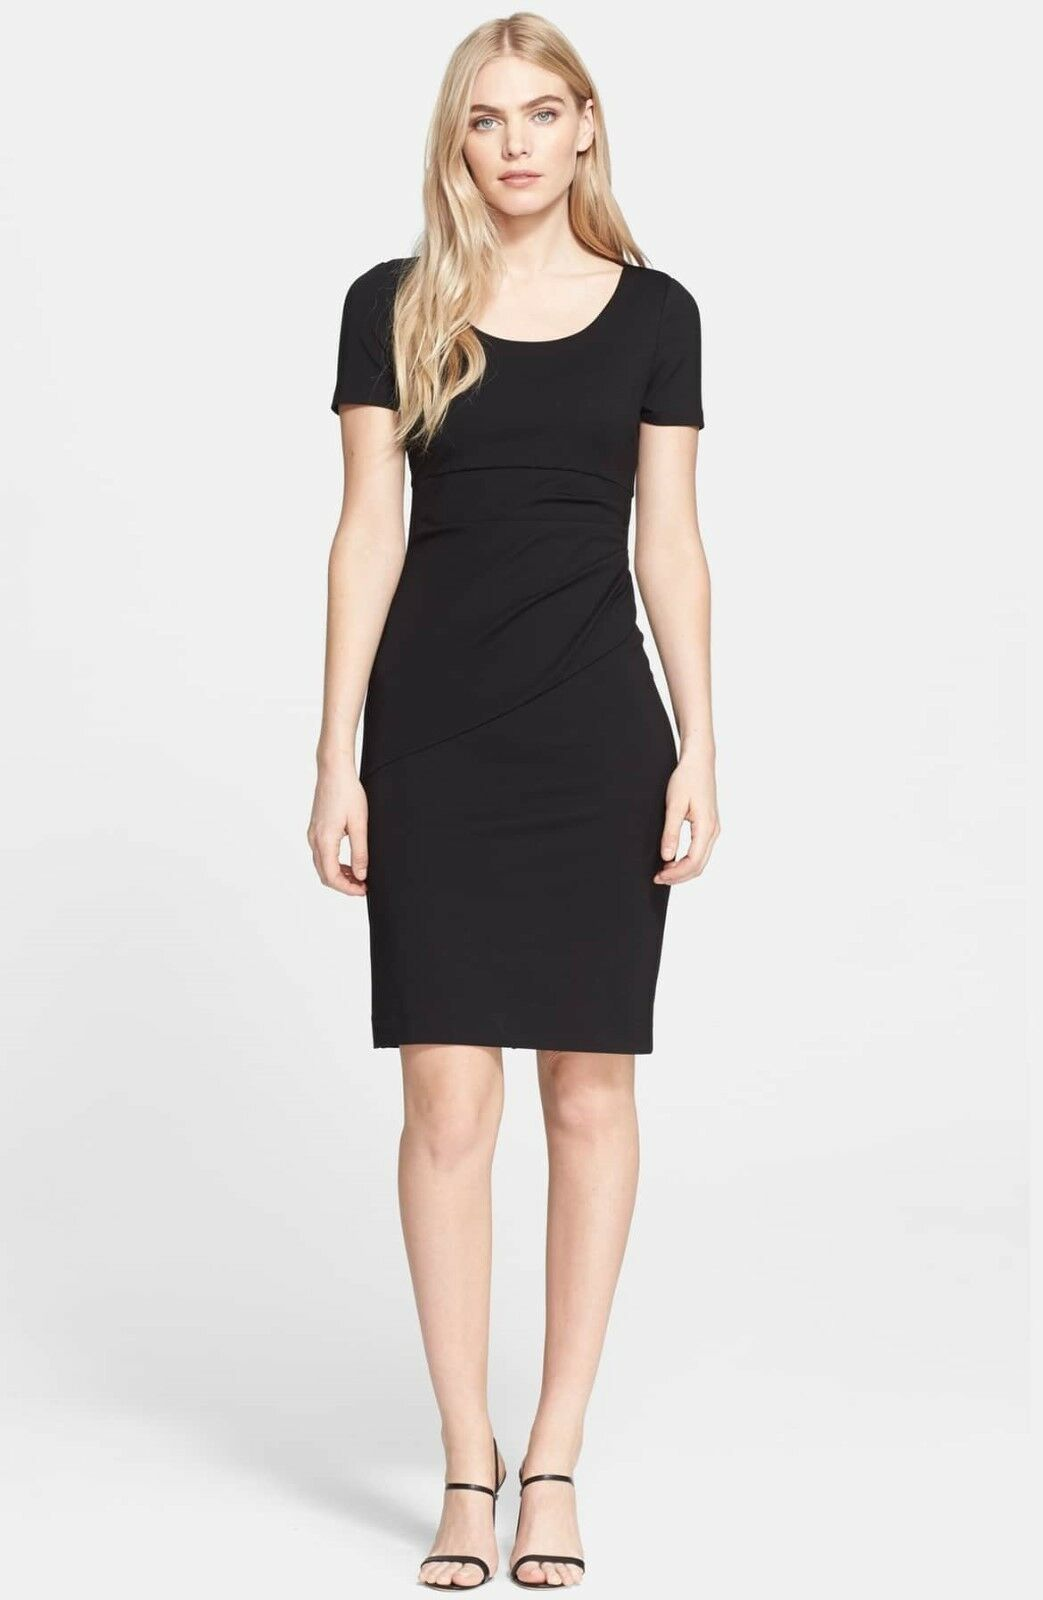 NEW Diane von Furstenberg 'Bevina' Knit Sheath Dress in schwarz - Größe 8